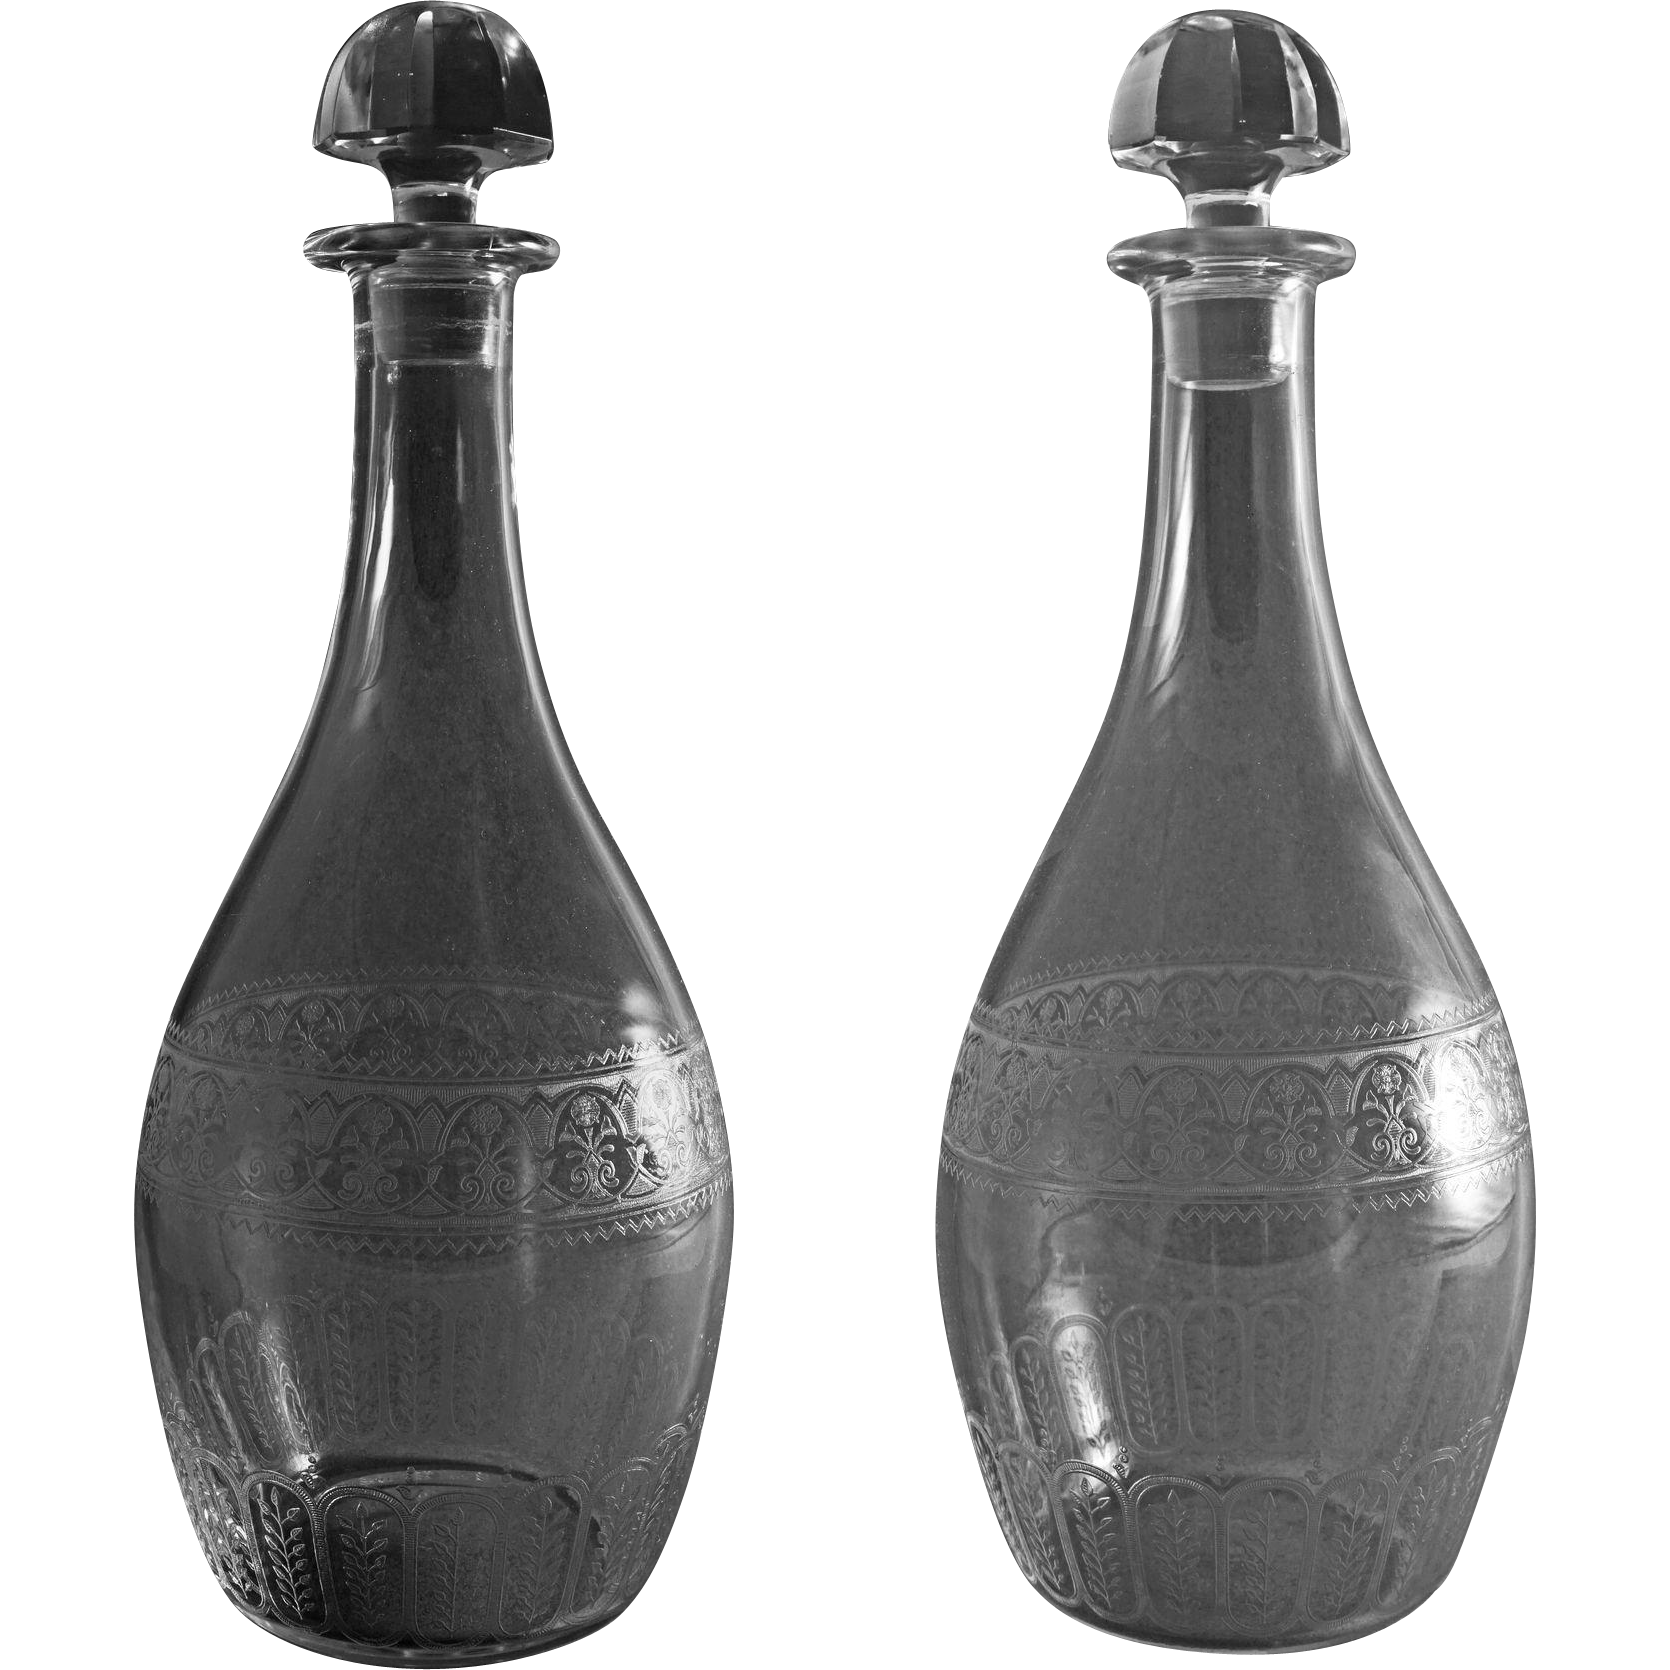 Pair Baccarat Etched Crystal Decanters and Original Stoppers  -  after 1920, France